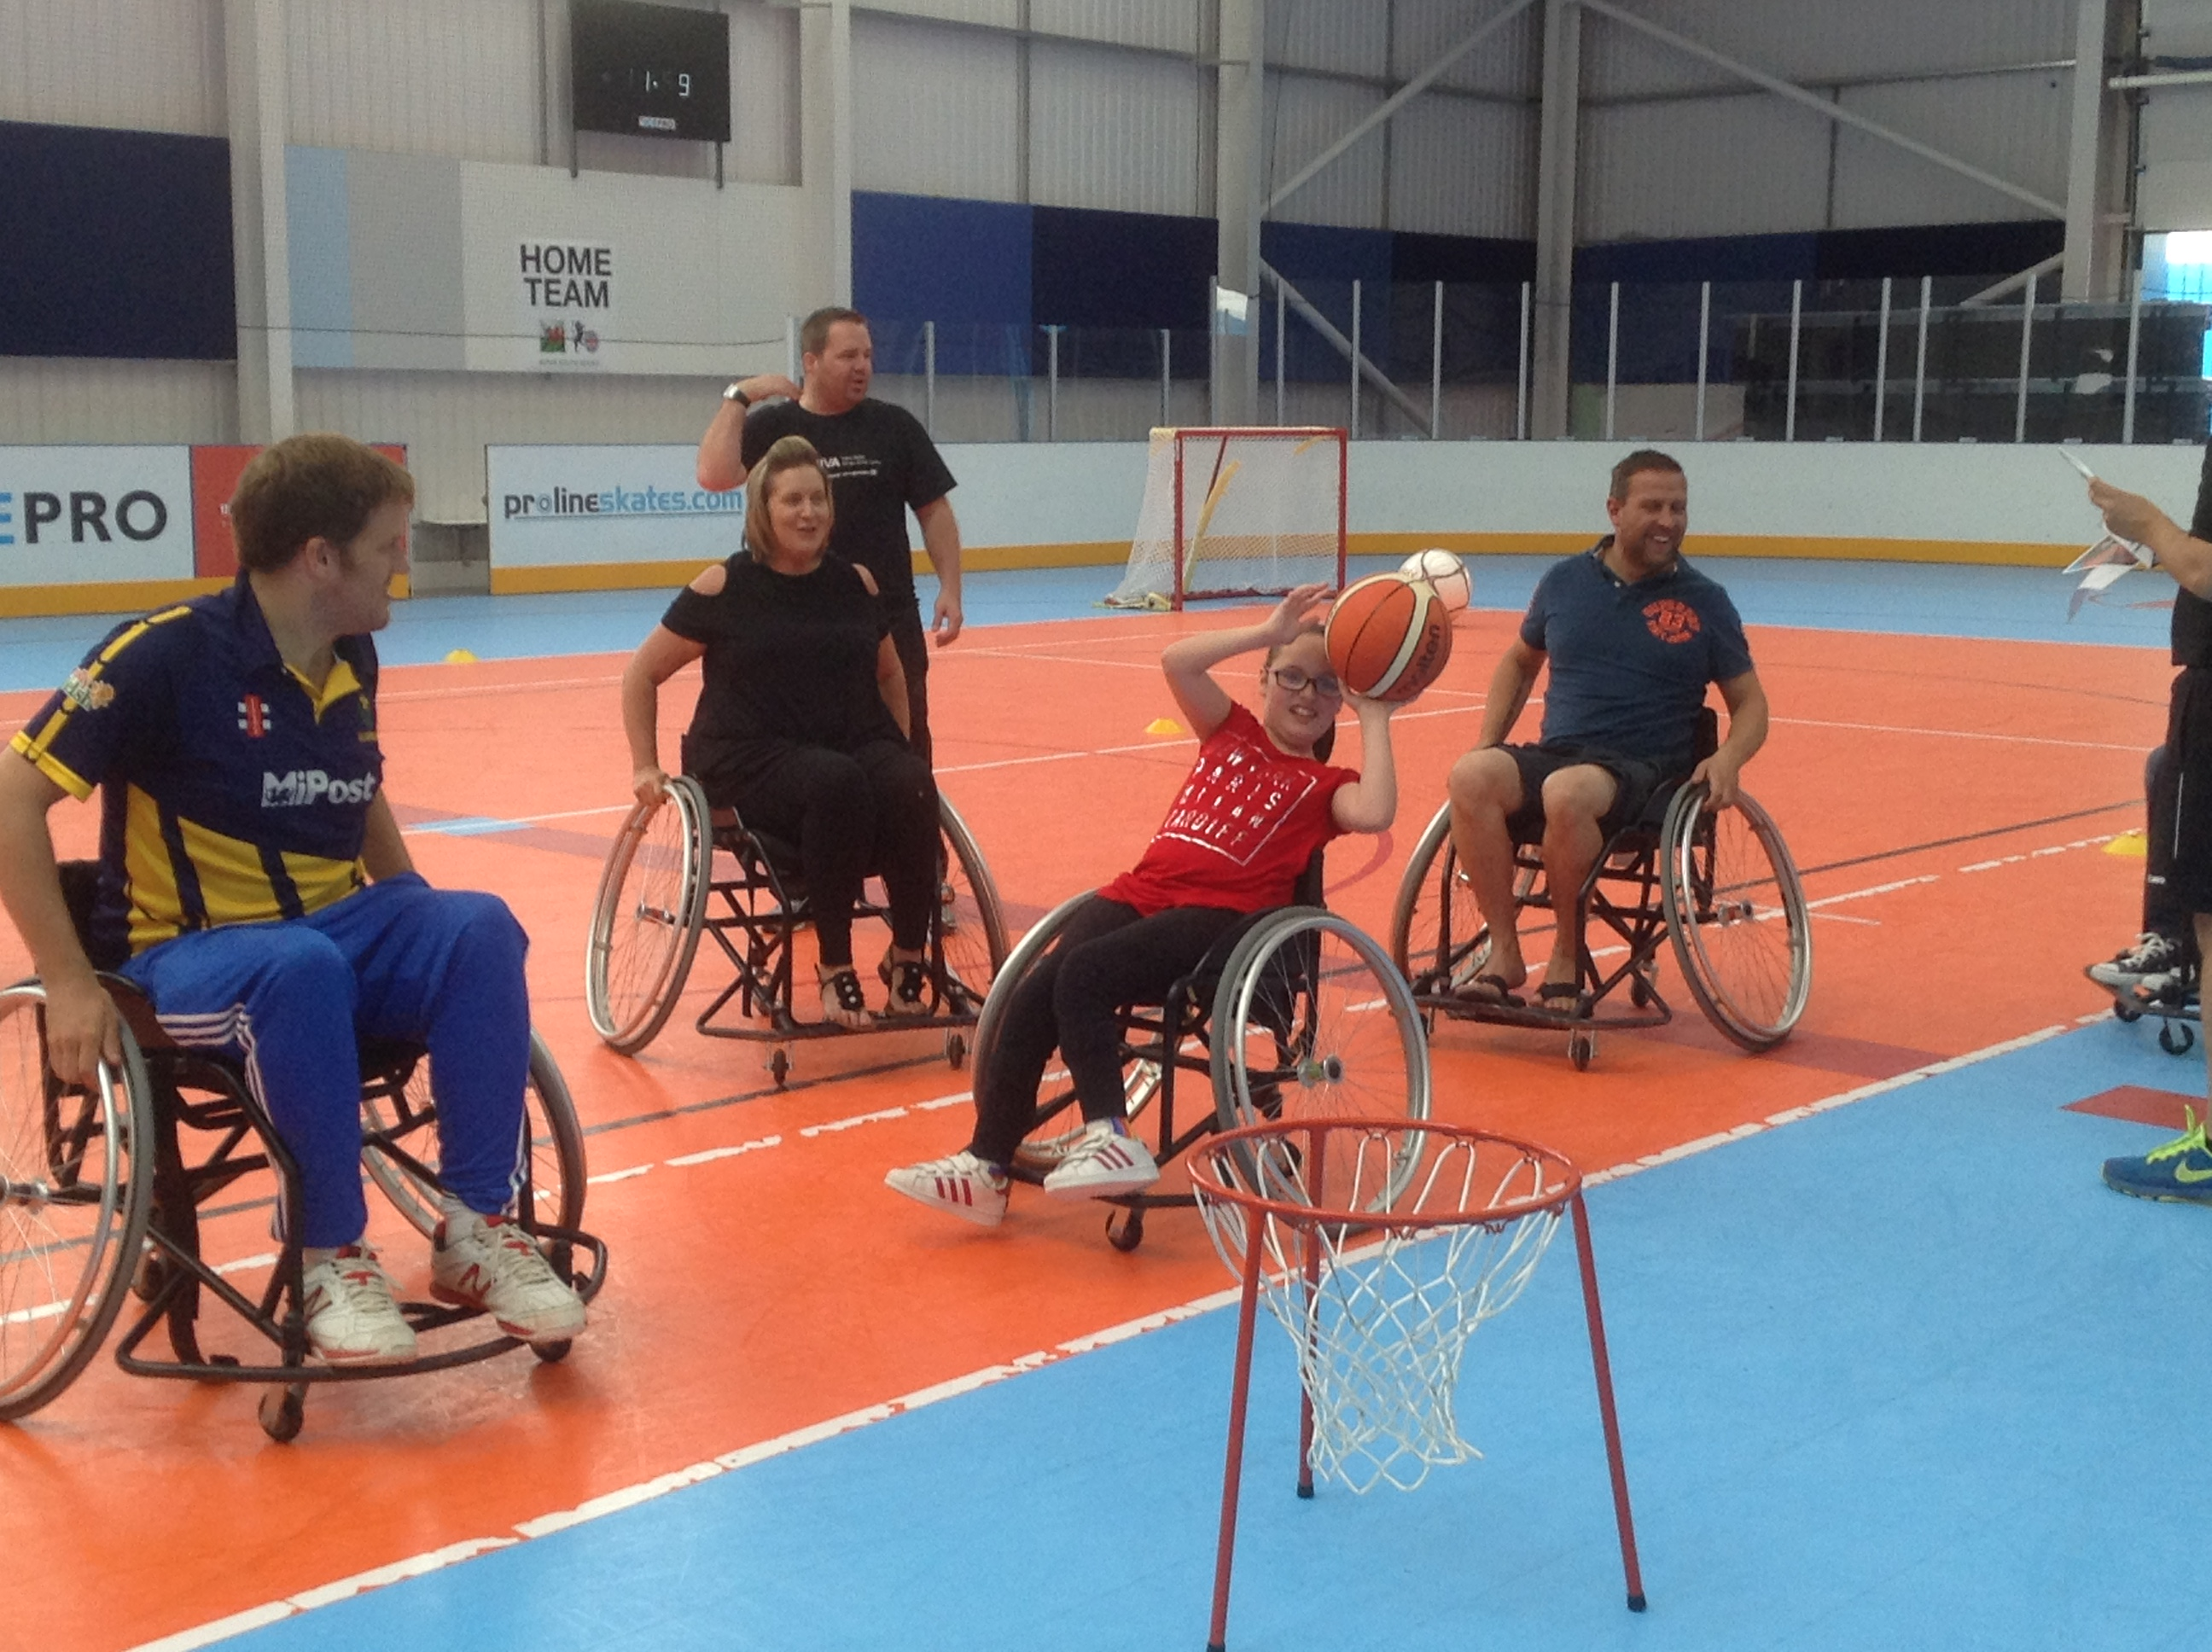 Kidz to Adultz Wales welcomes over 1000 visitors to House of Sport Cardiff